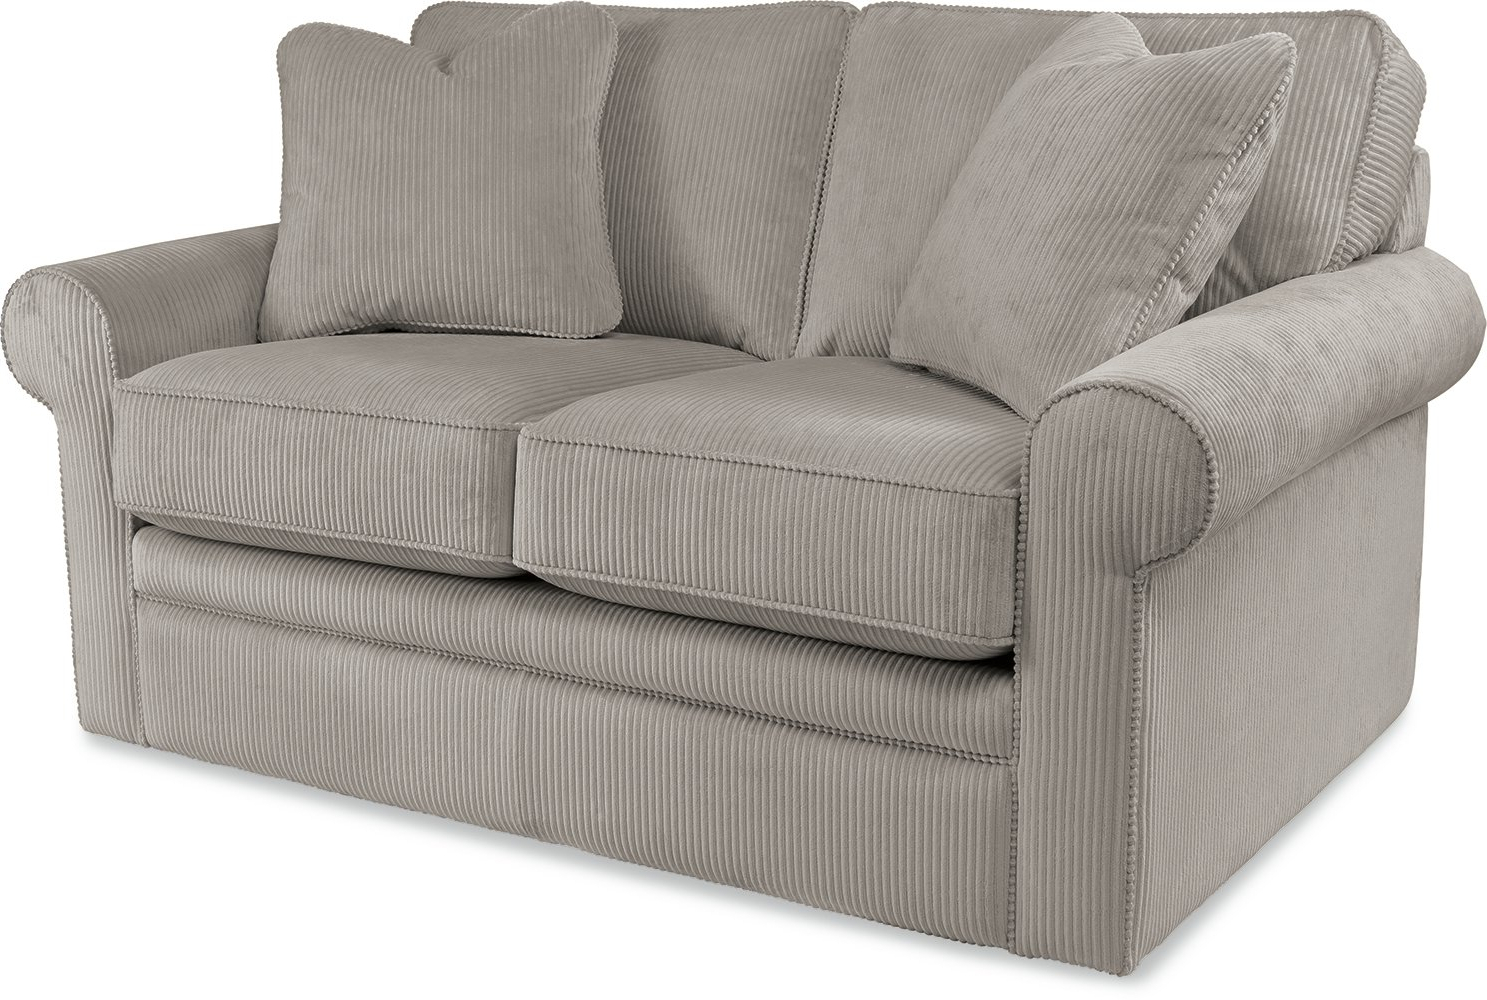 Popular Collins Sofa Sectionals With Reversible Chaise Inside La Z Boy Collins Premier Loveseat & Reviews (Gallery 10 of 20)